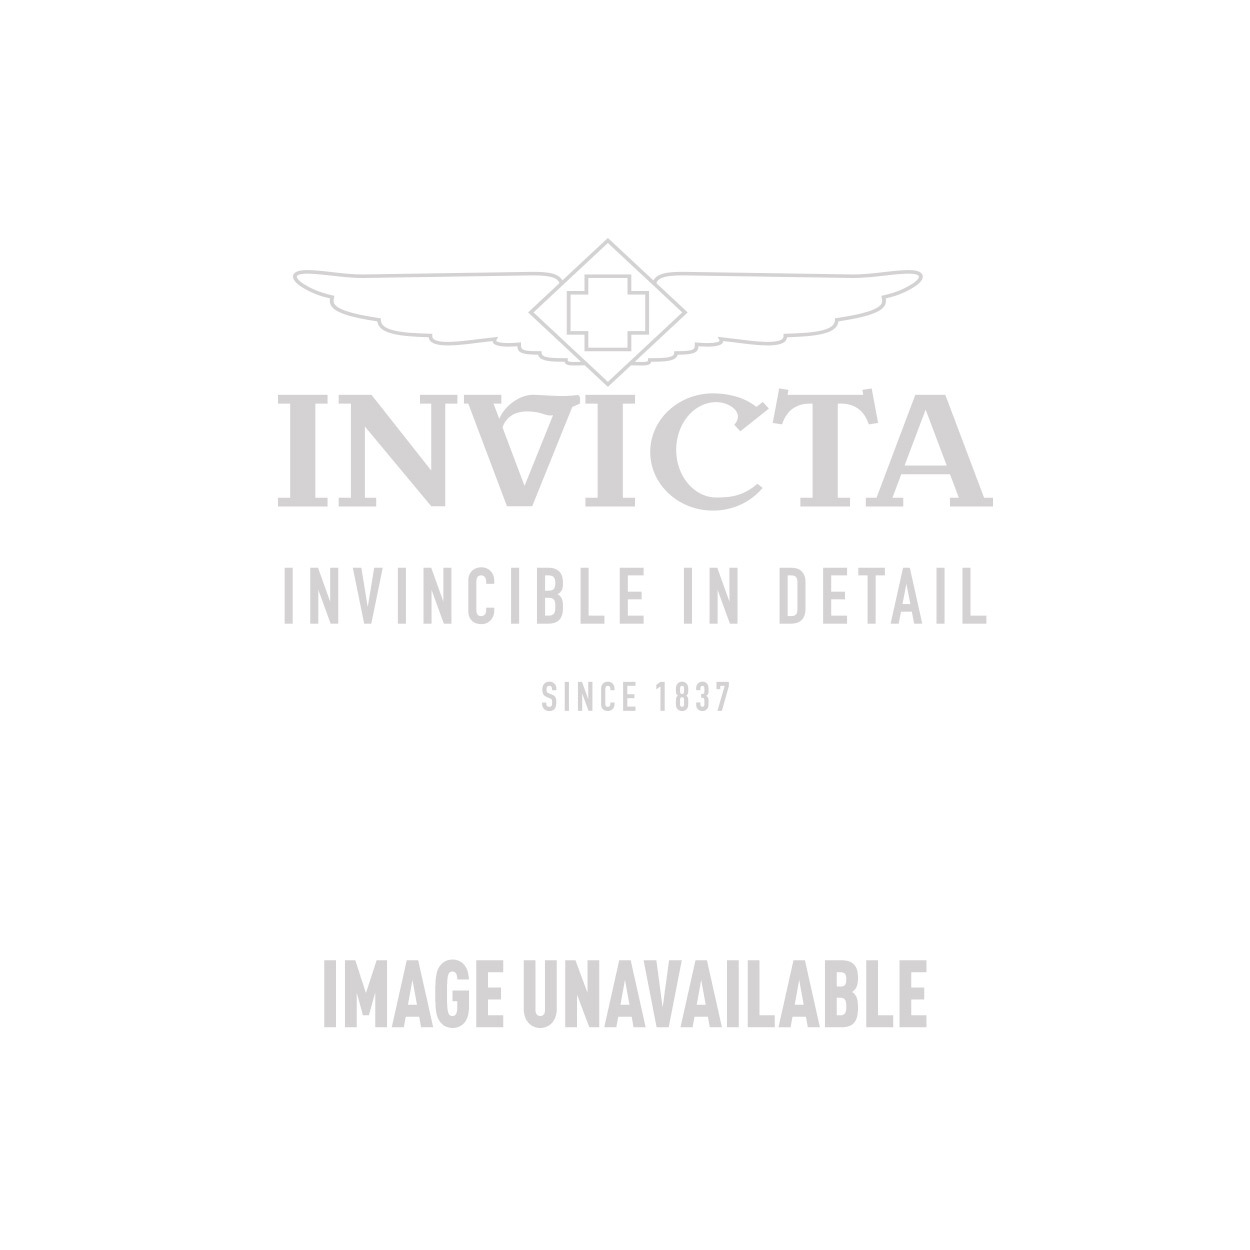 Invicta Bolt Swiss Made Quartz Watch - Stainless Steel case Stainless Steel band - Model 1445